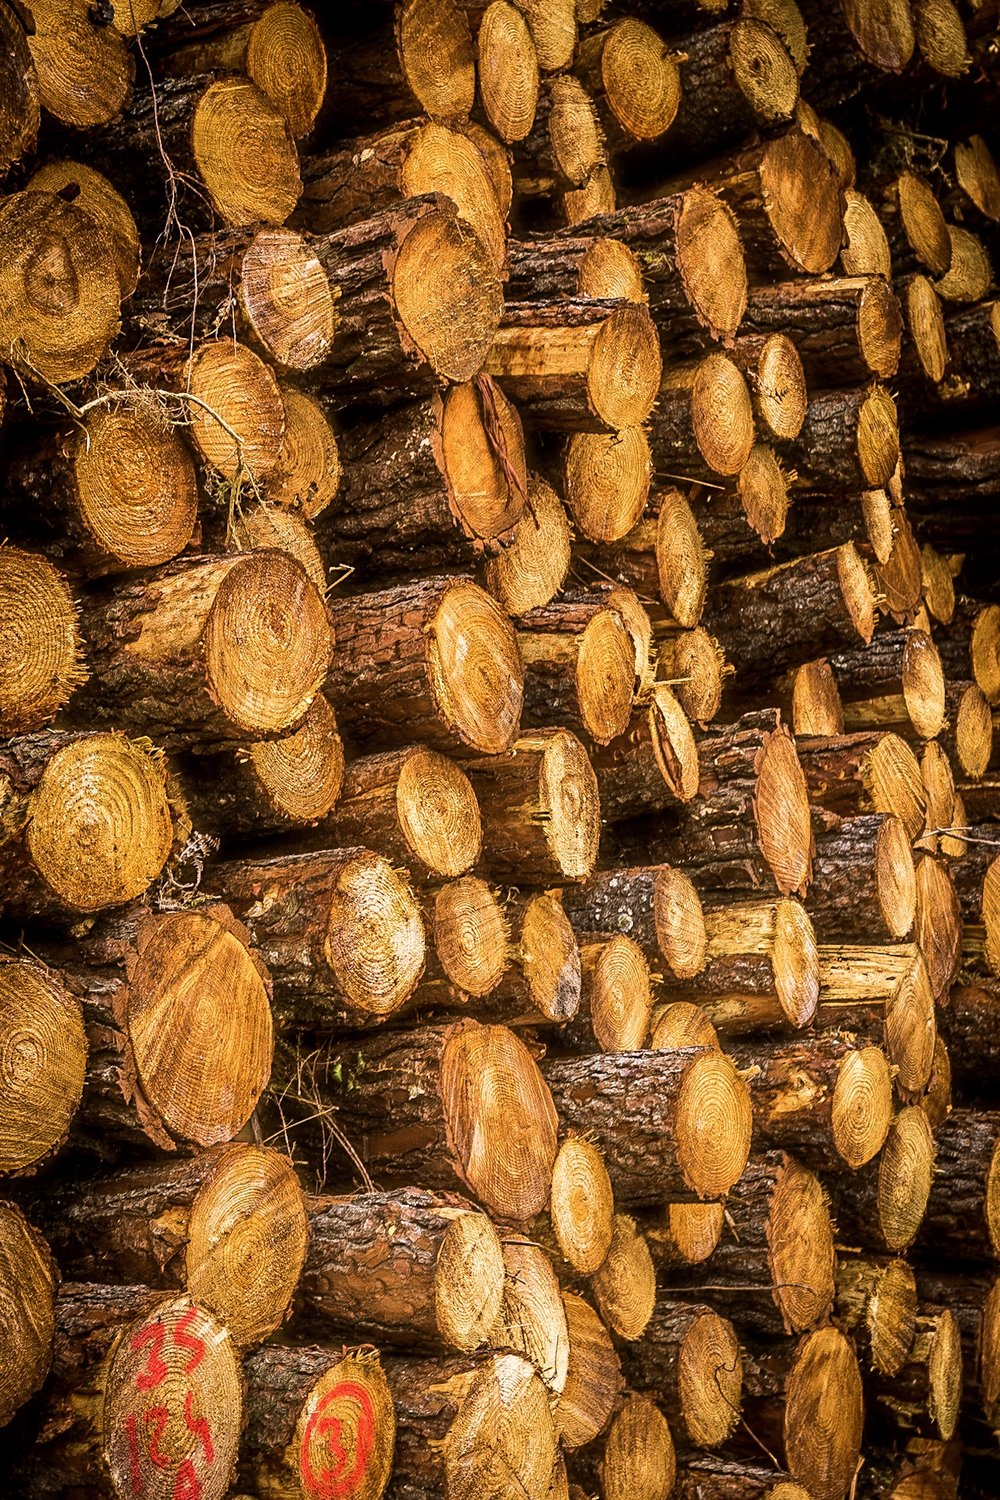 Picture of a stack of logs